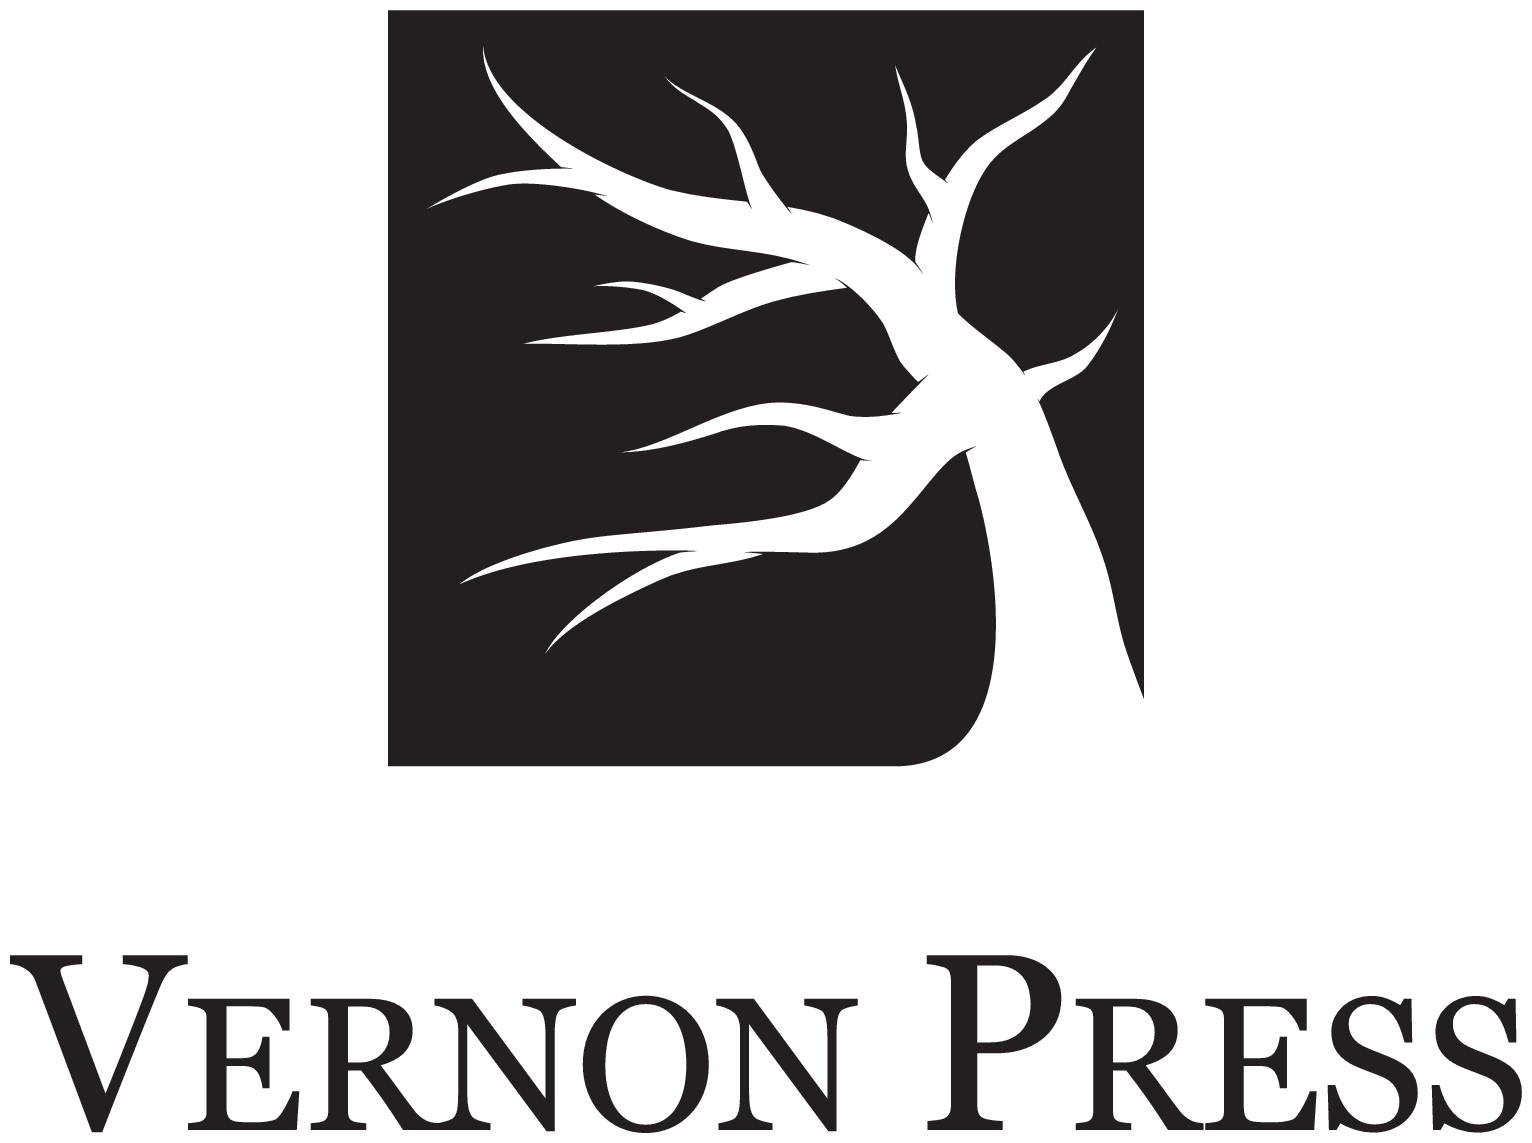 vernon-press-logo-a-top-2